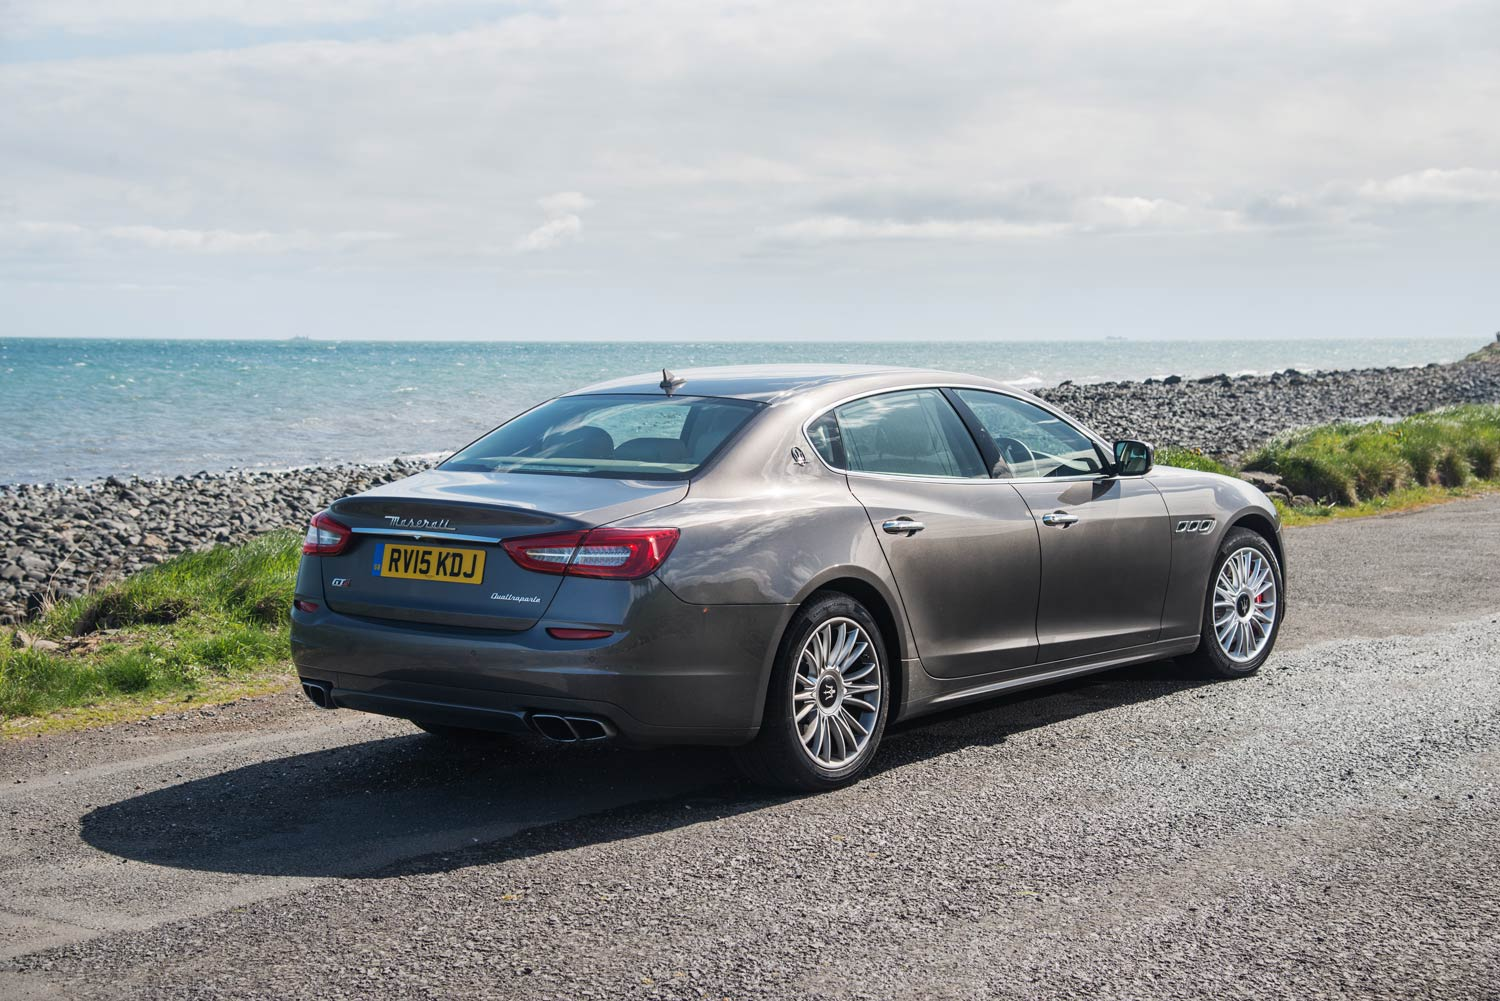 So what's the Maserati Quattroporte GTS like to drive?